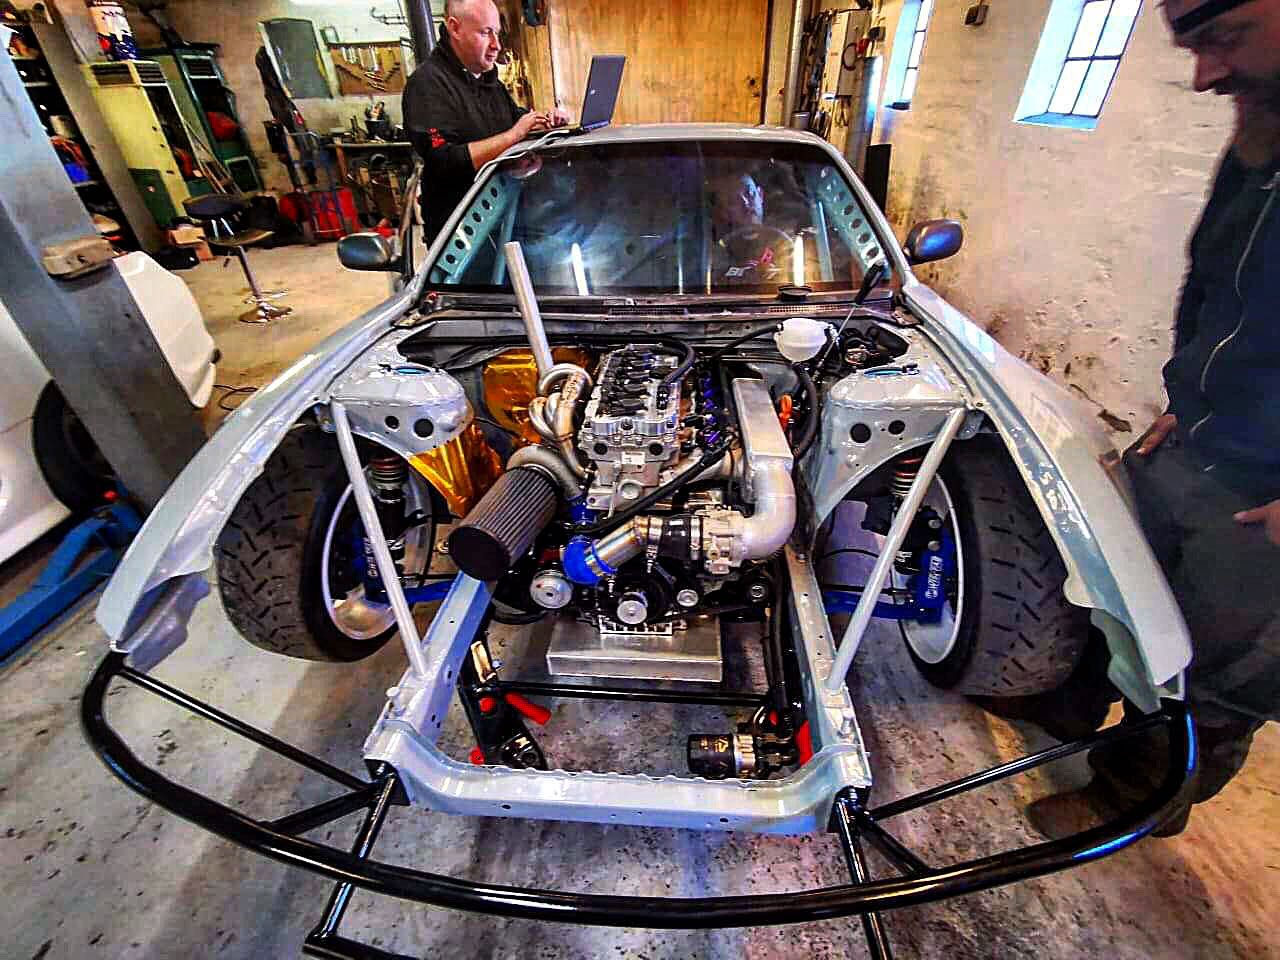 Nissan S14 with a turbo VW inline-five